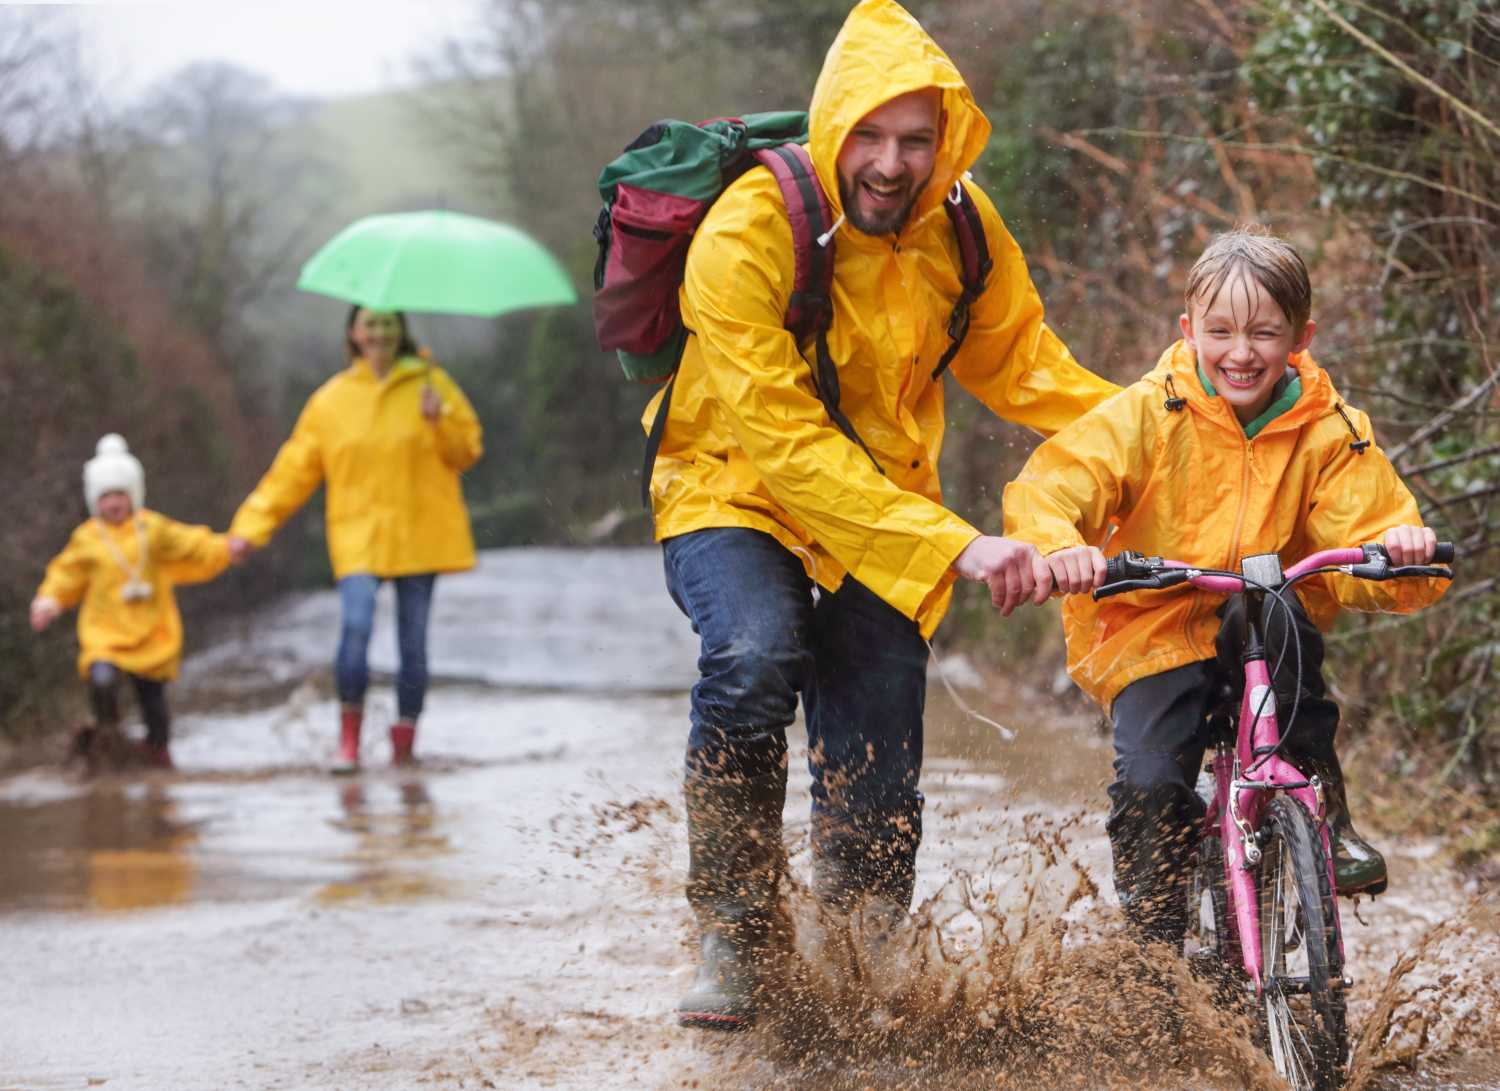 A family in yellow raincoats riding bikes and walking in the rain through a woodland